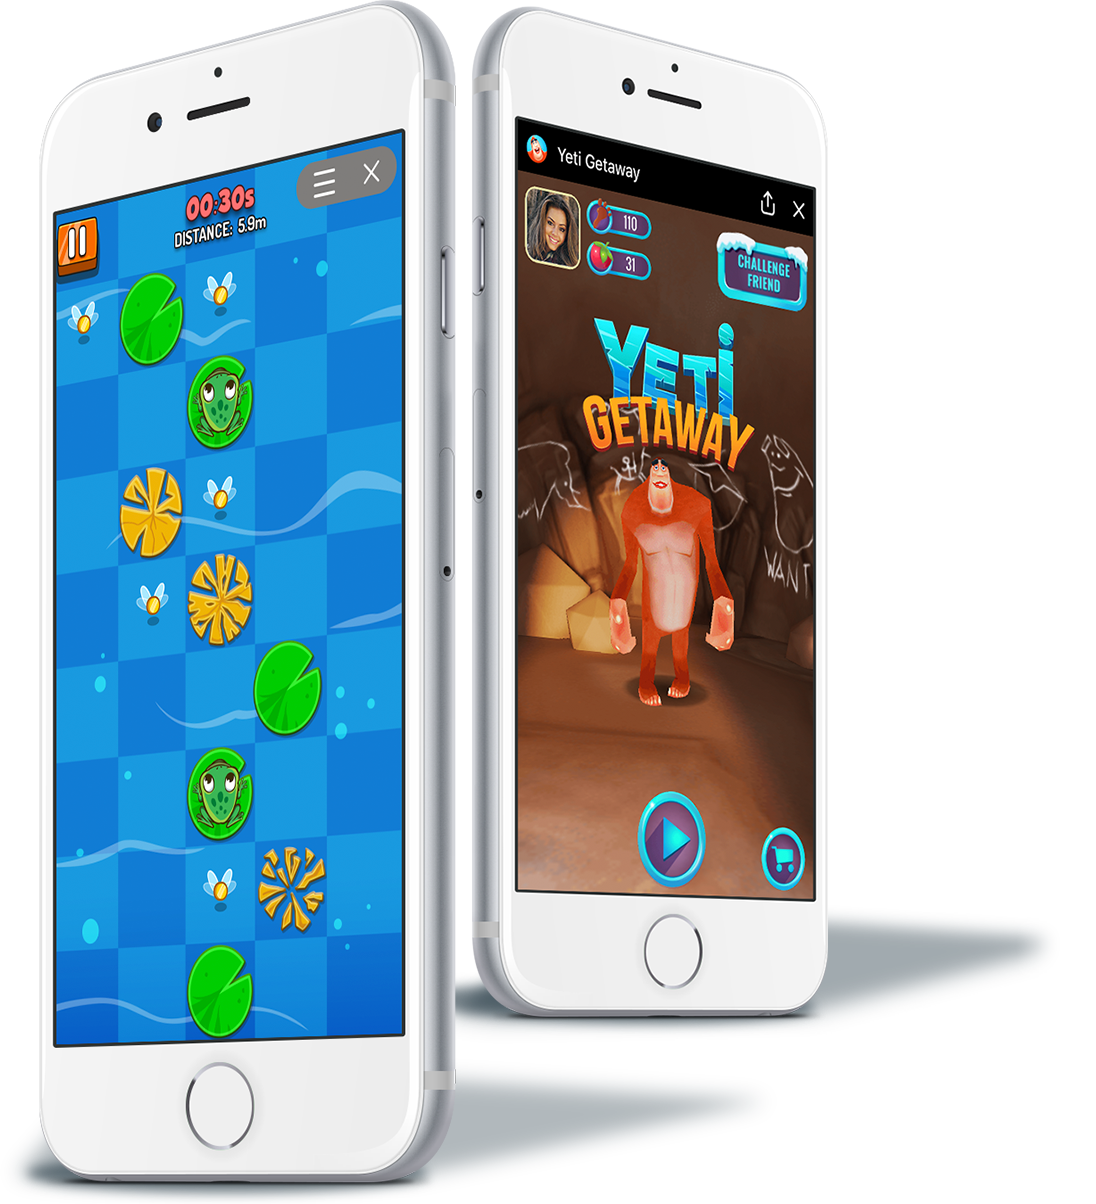 Facebook Instant Games - Facebook offers a new paradigm for mobile gaming. Now you can play with you friends directly from Facebook Messenger. No download needed. PlayWorks is a leader in this exciting game-changing space!